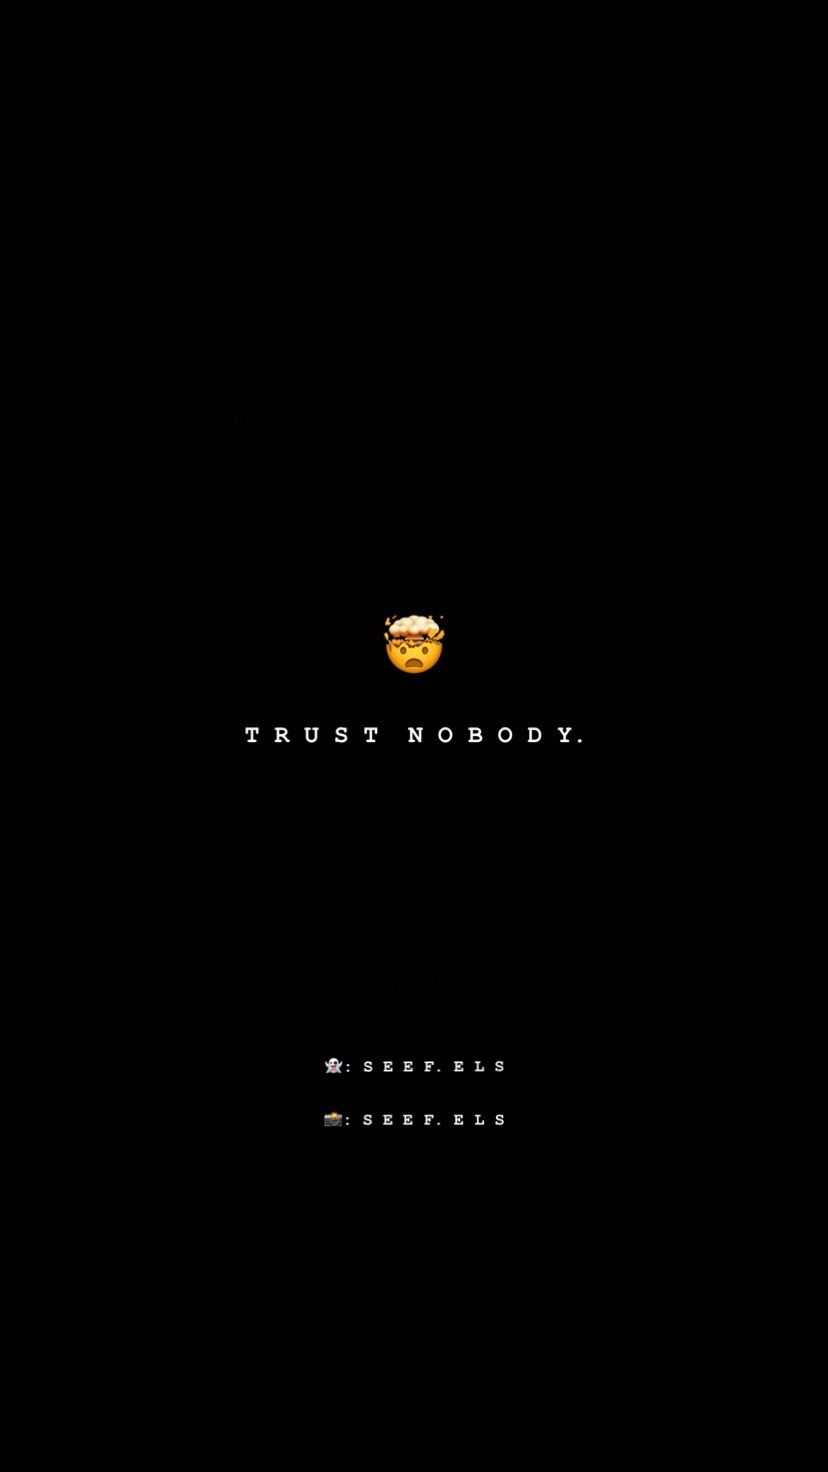 quotes quote trustnobody - Image by sseefshimy